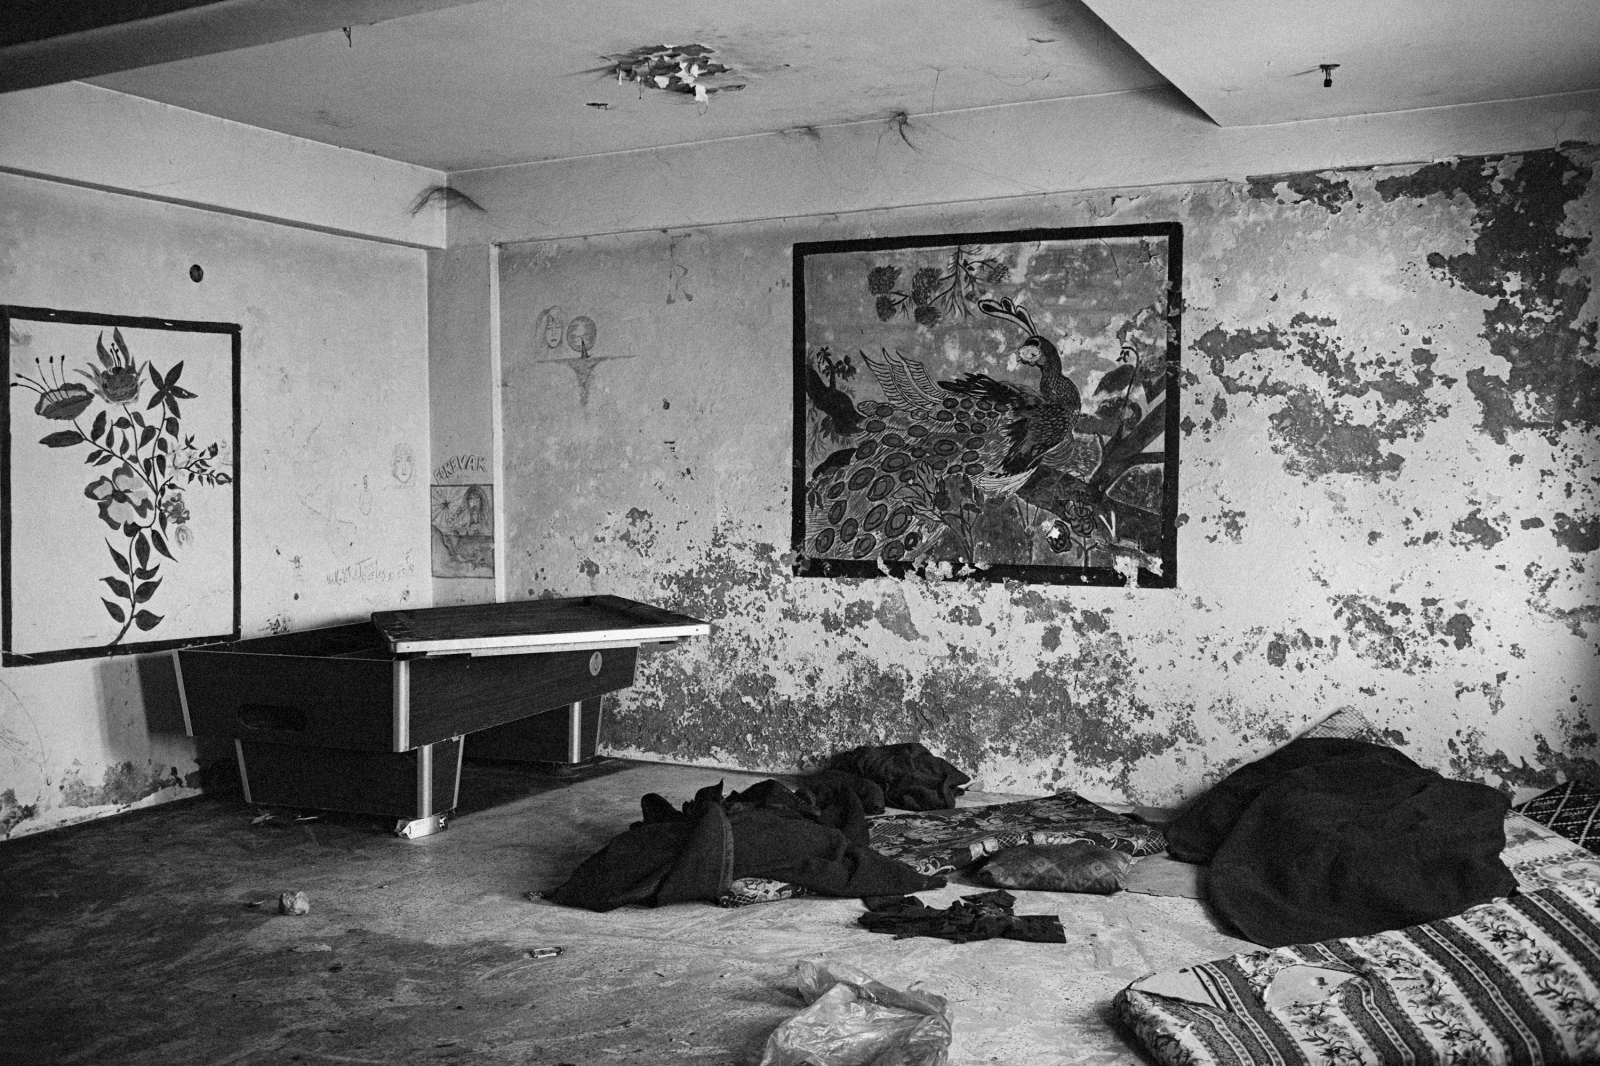 A room used by Gaddafi soldiers is seen littered with their clothing and food wrappers at a police station in Benghazi, Libya, on March 5, 2011.